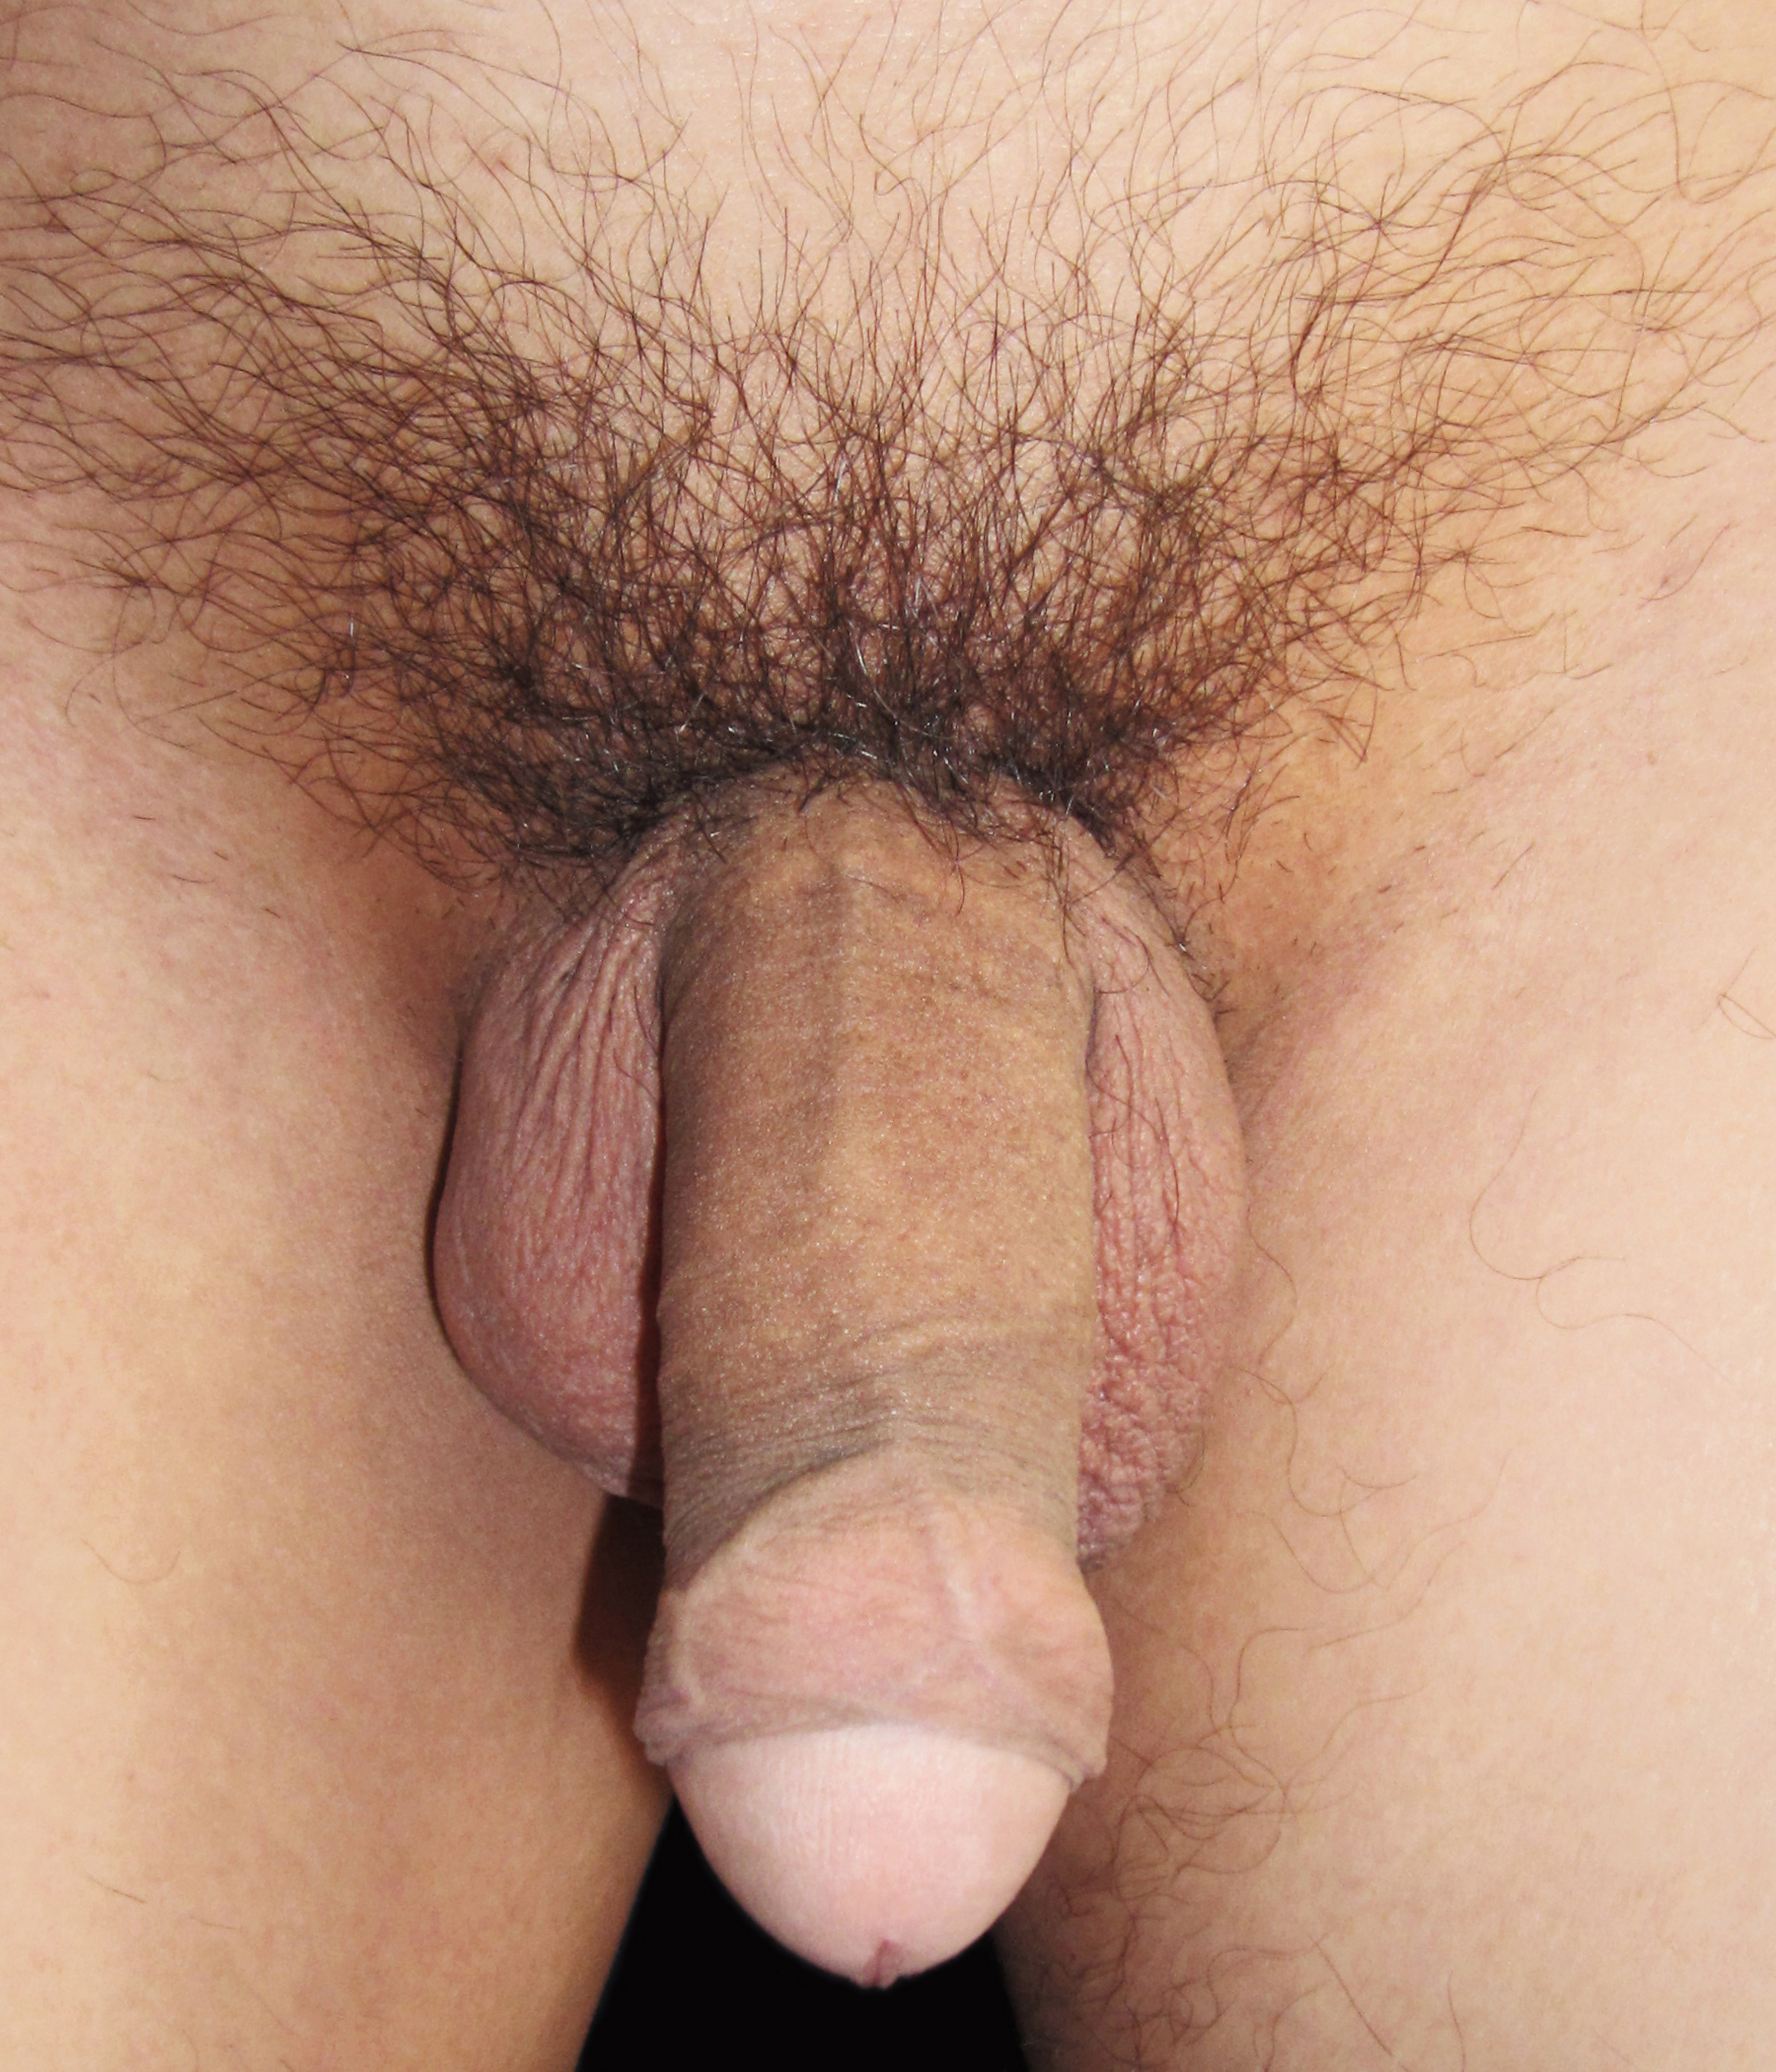 Erection close up - 33 Pics - xHamstercom